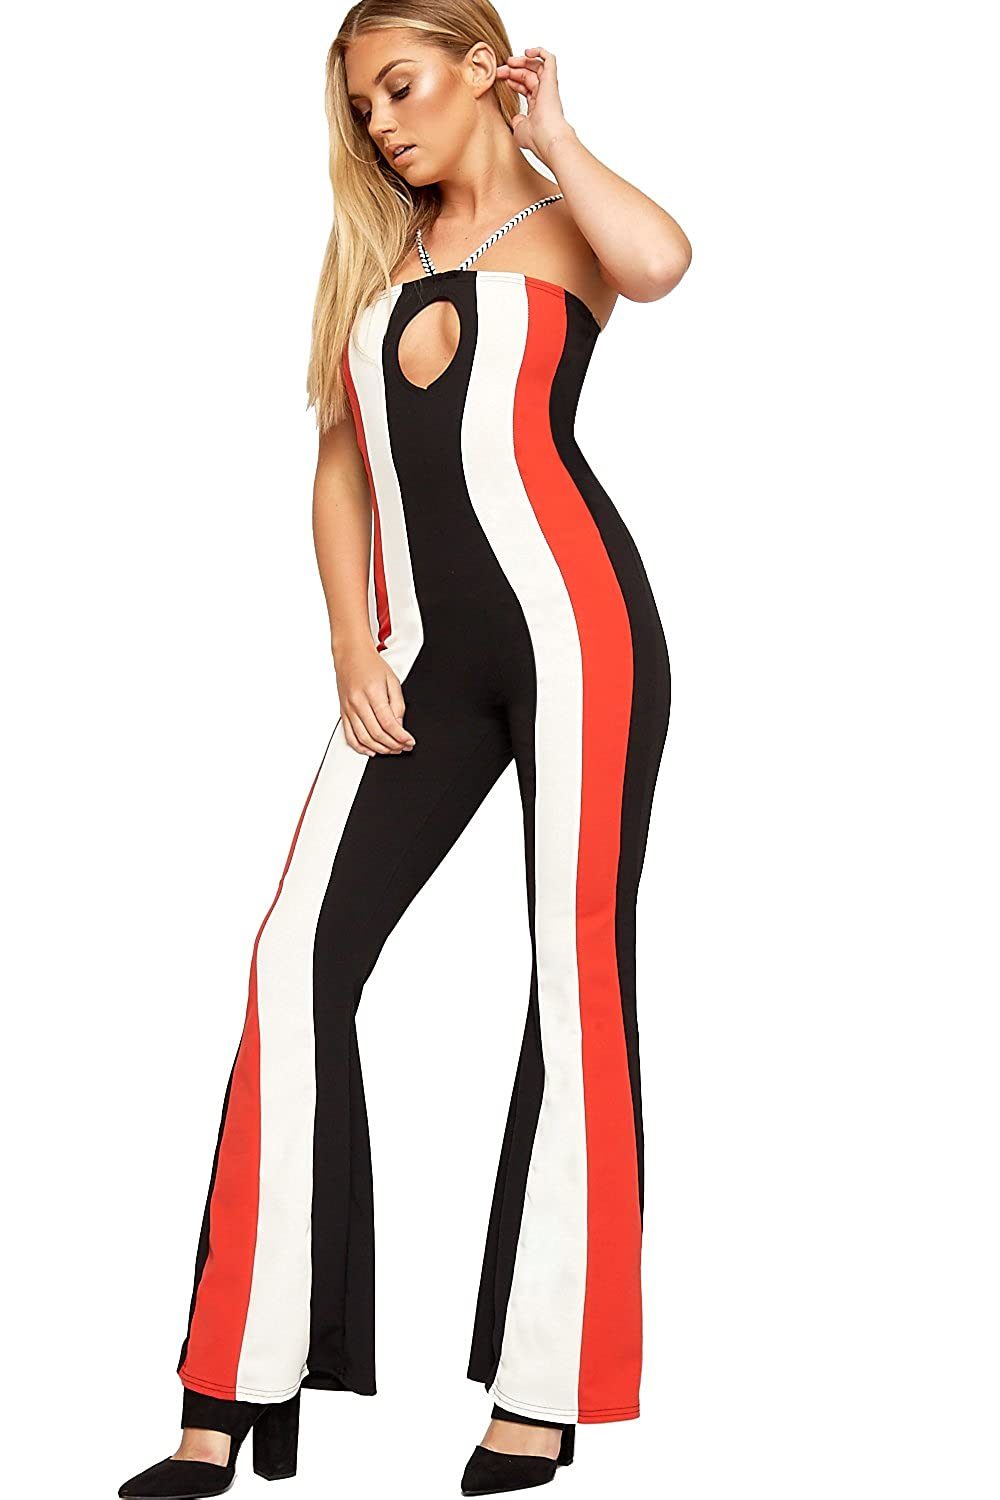 c5a53efd423d WearAll Women s Strappy Striped Print Sleeveless Keyhole Flared Wide Leg  Ladies Jumpsuit 6-14  Amazon.co.uk  Clothing